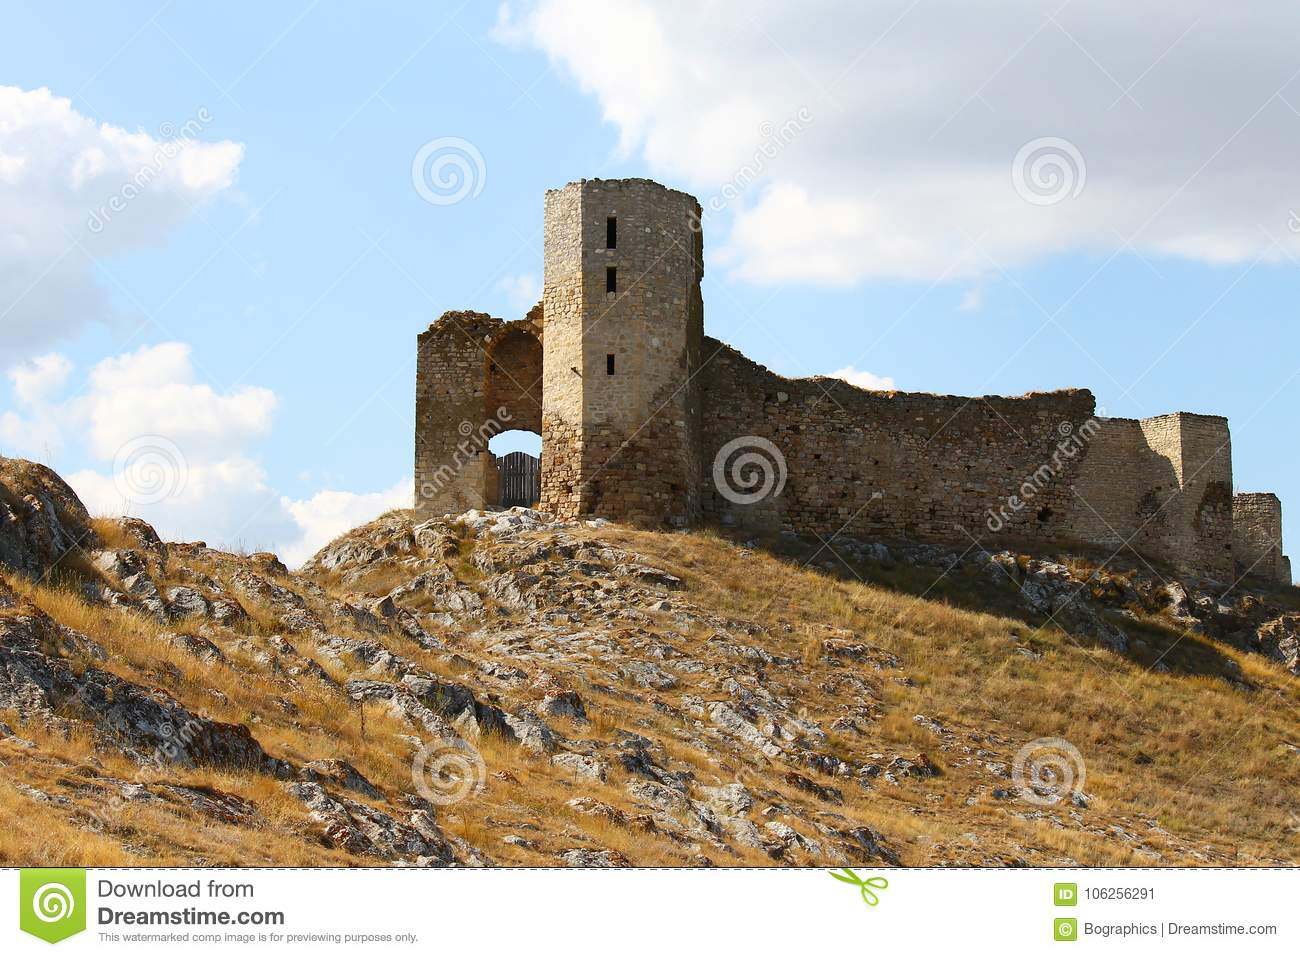 Ruins of Enisala old fortress on rocky hill